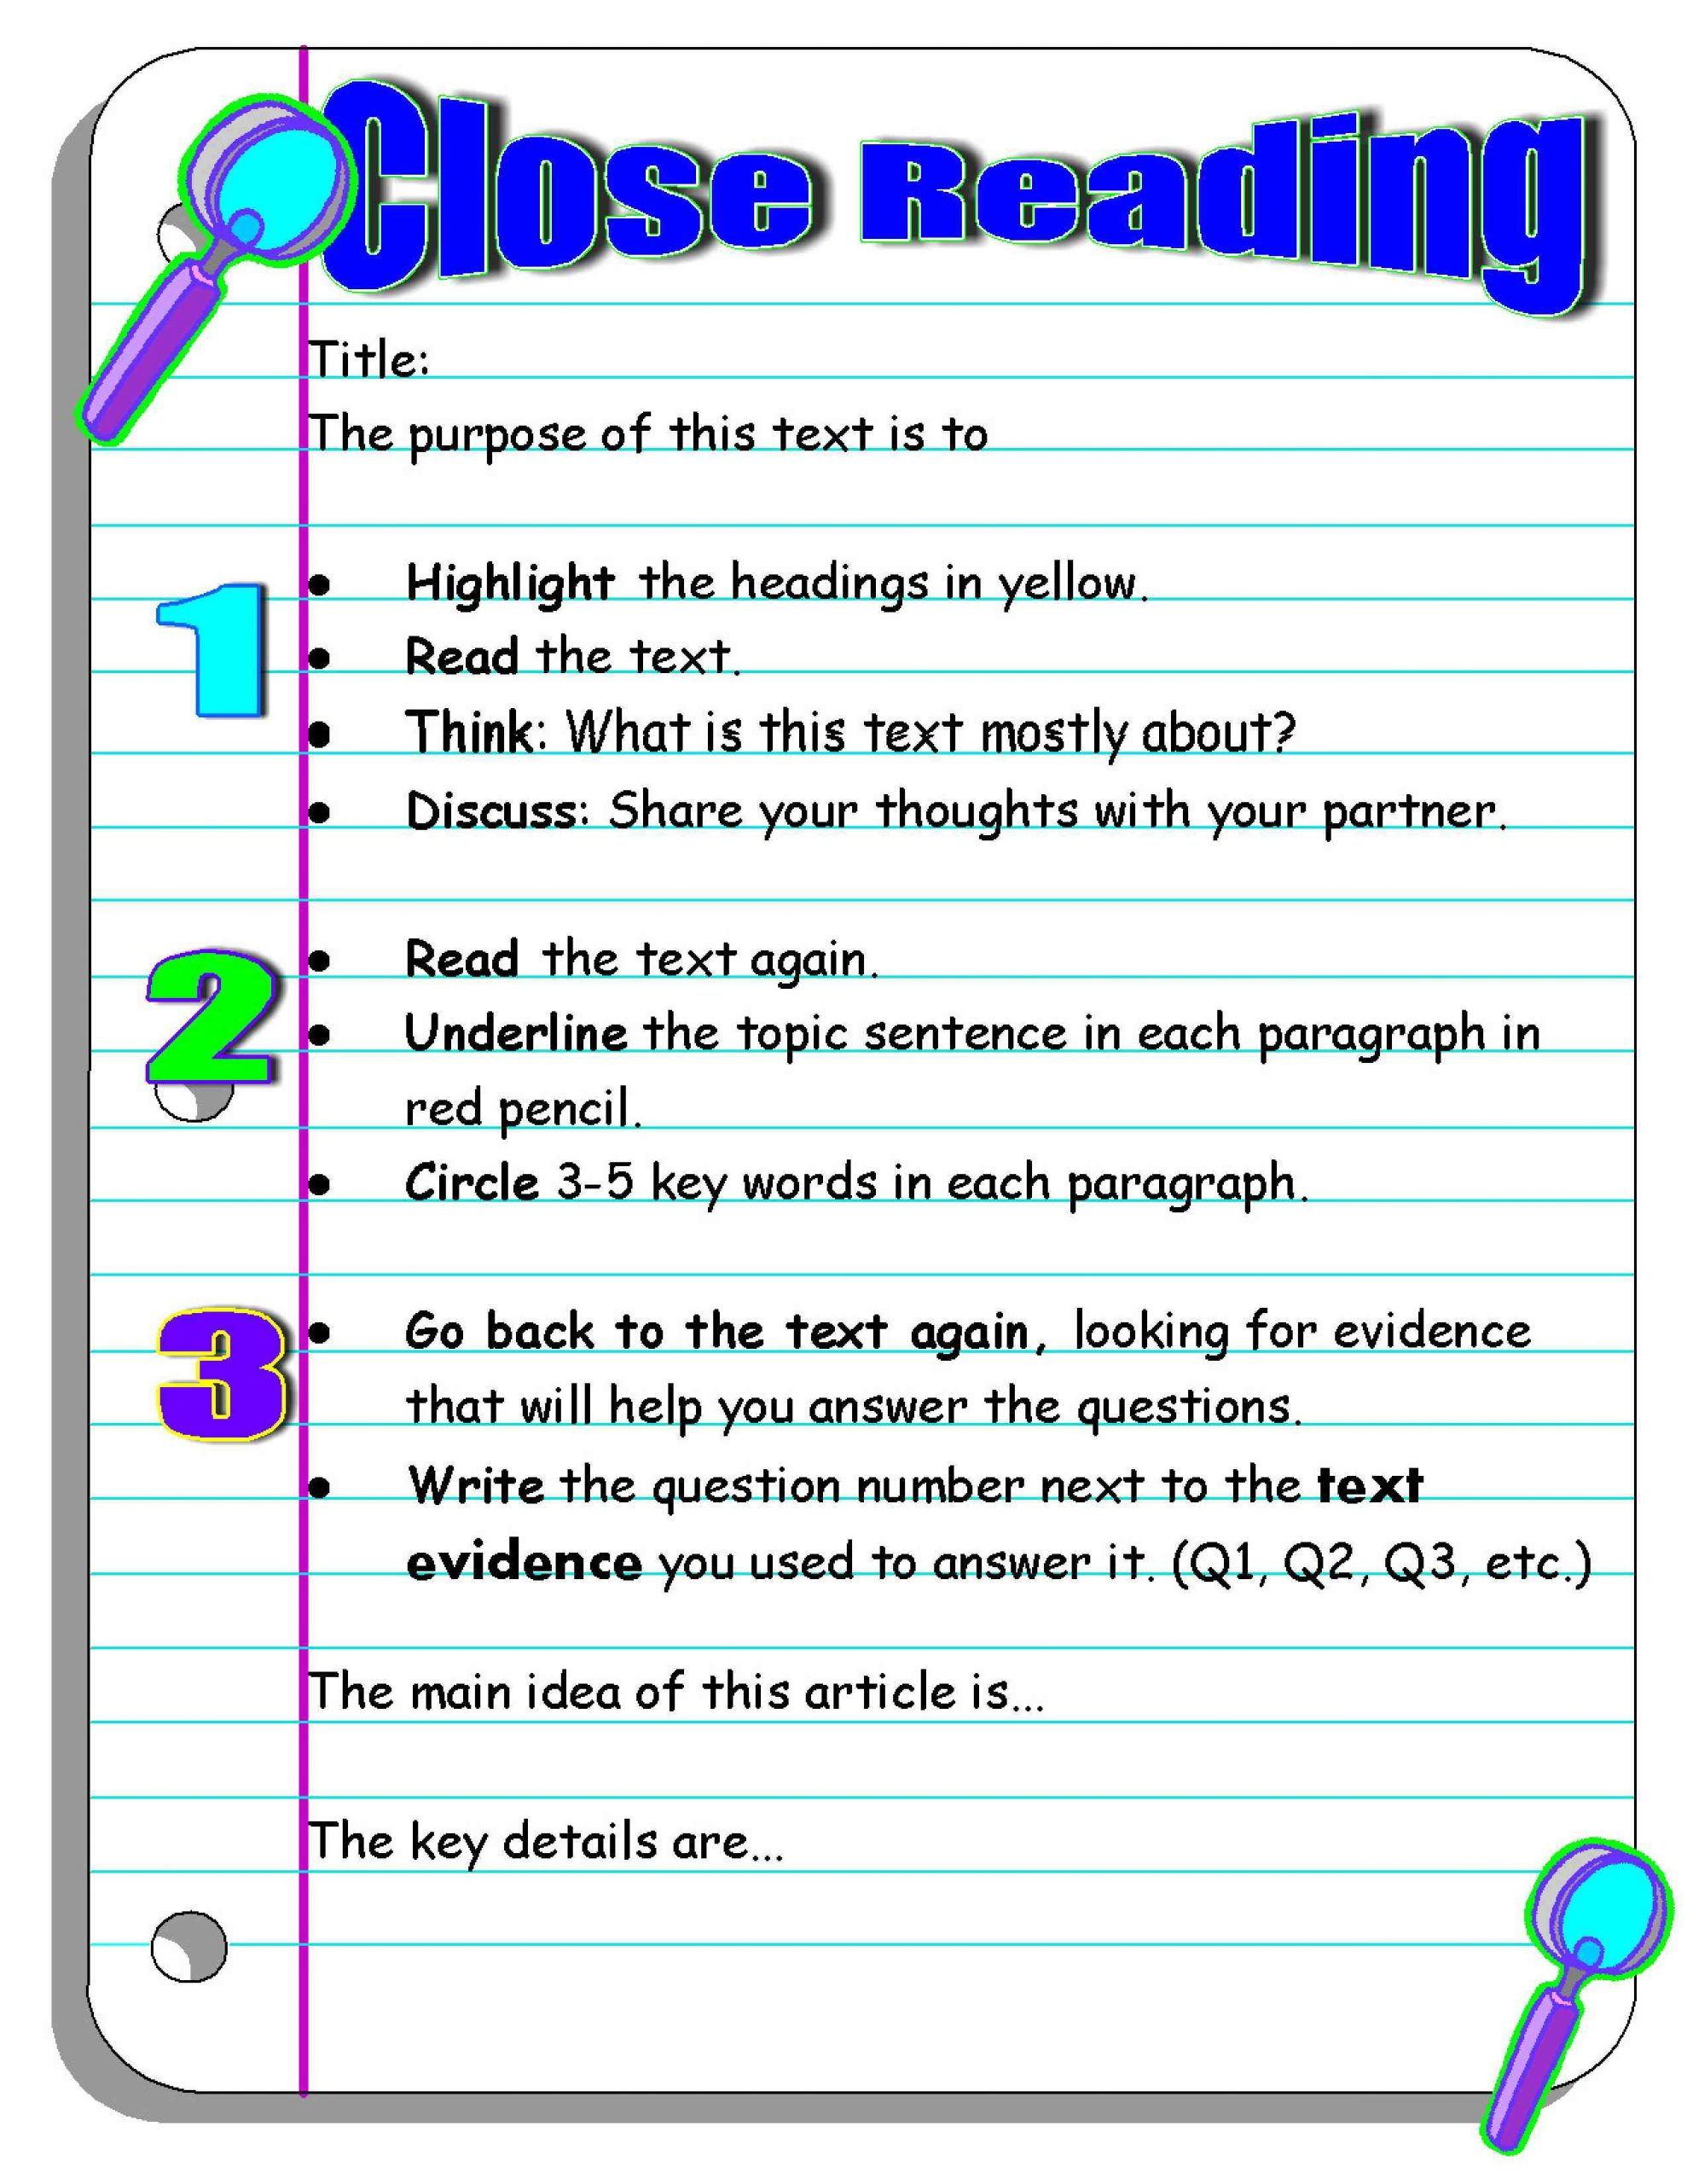 Close Reading Activities Worksheets Investigating Nonfiction Part 2 Digging Deeper with Close